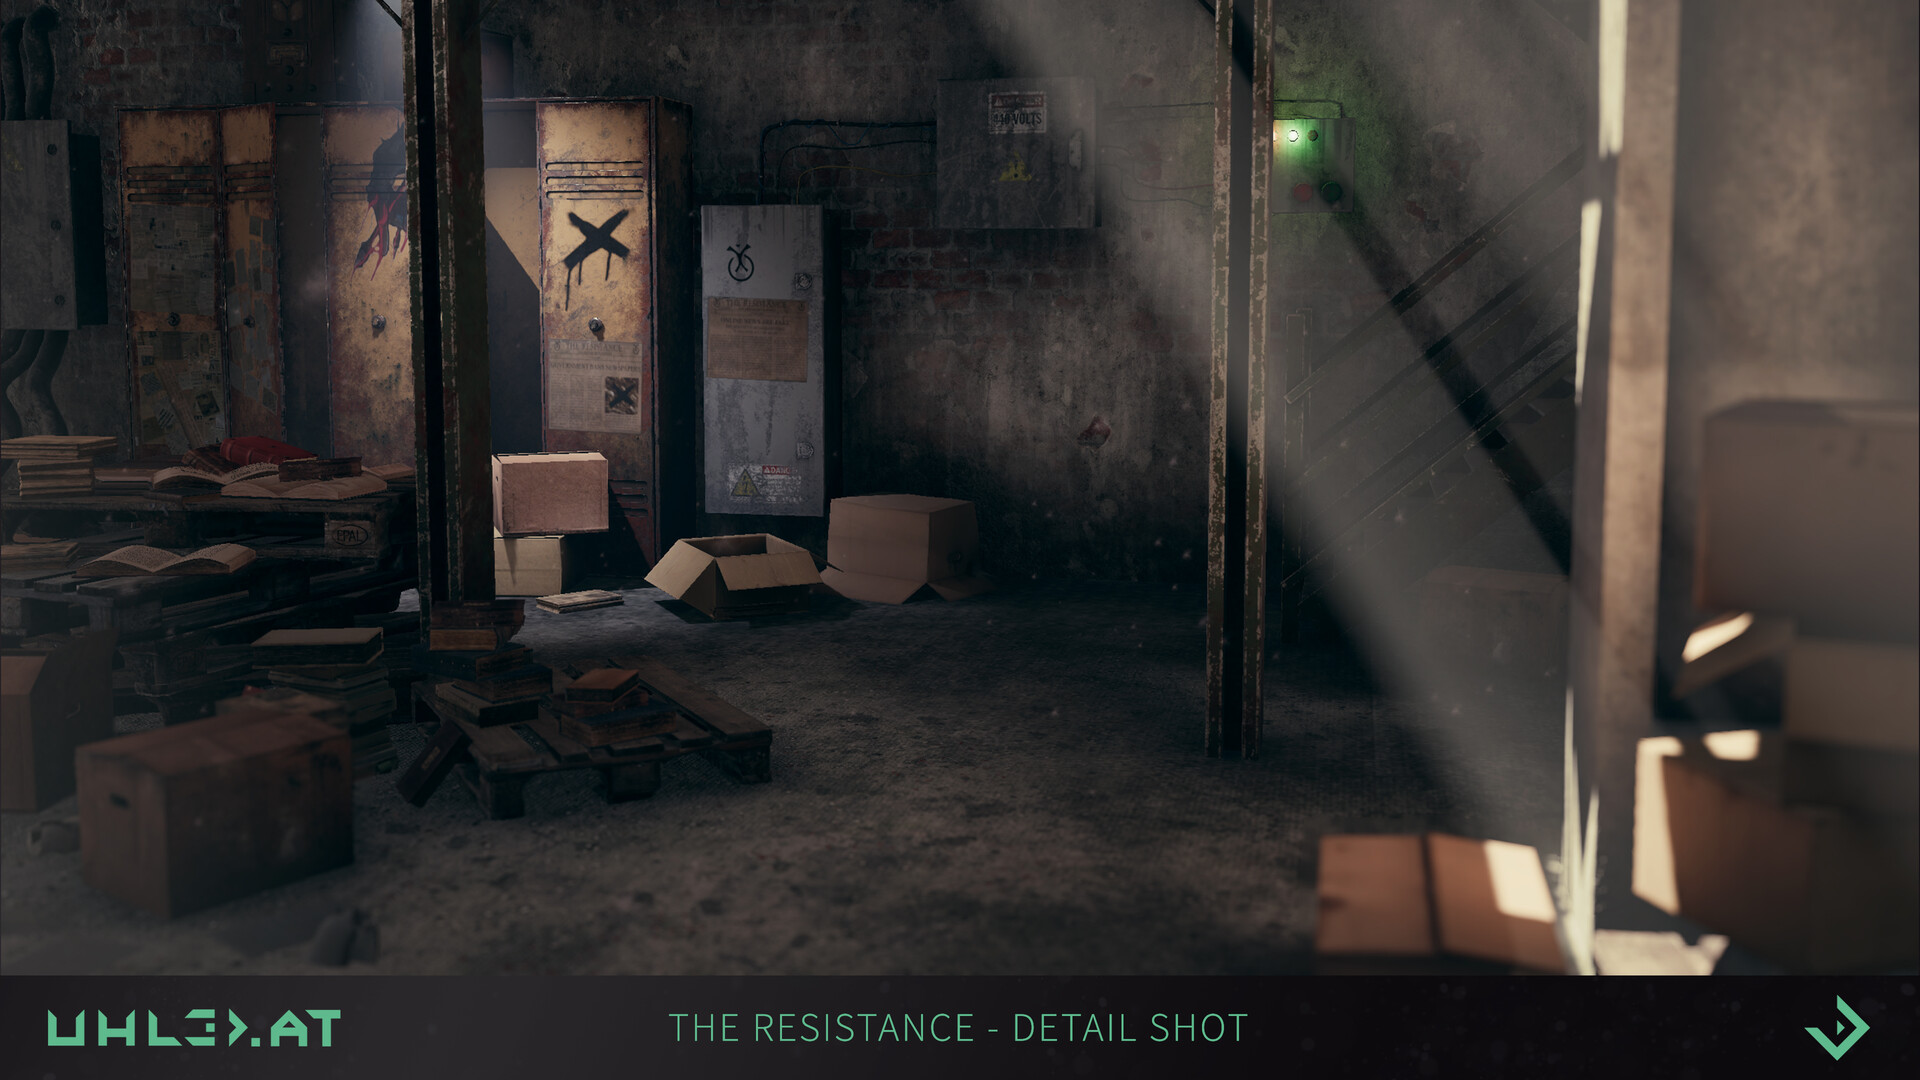 Dominik uhl the resistance detailshot 06